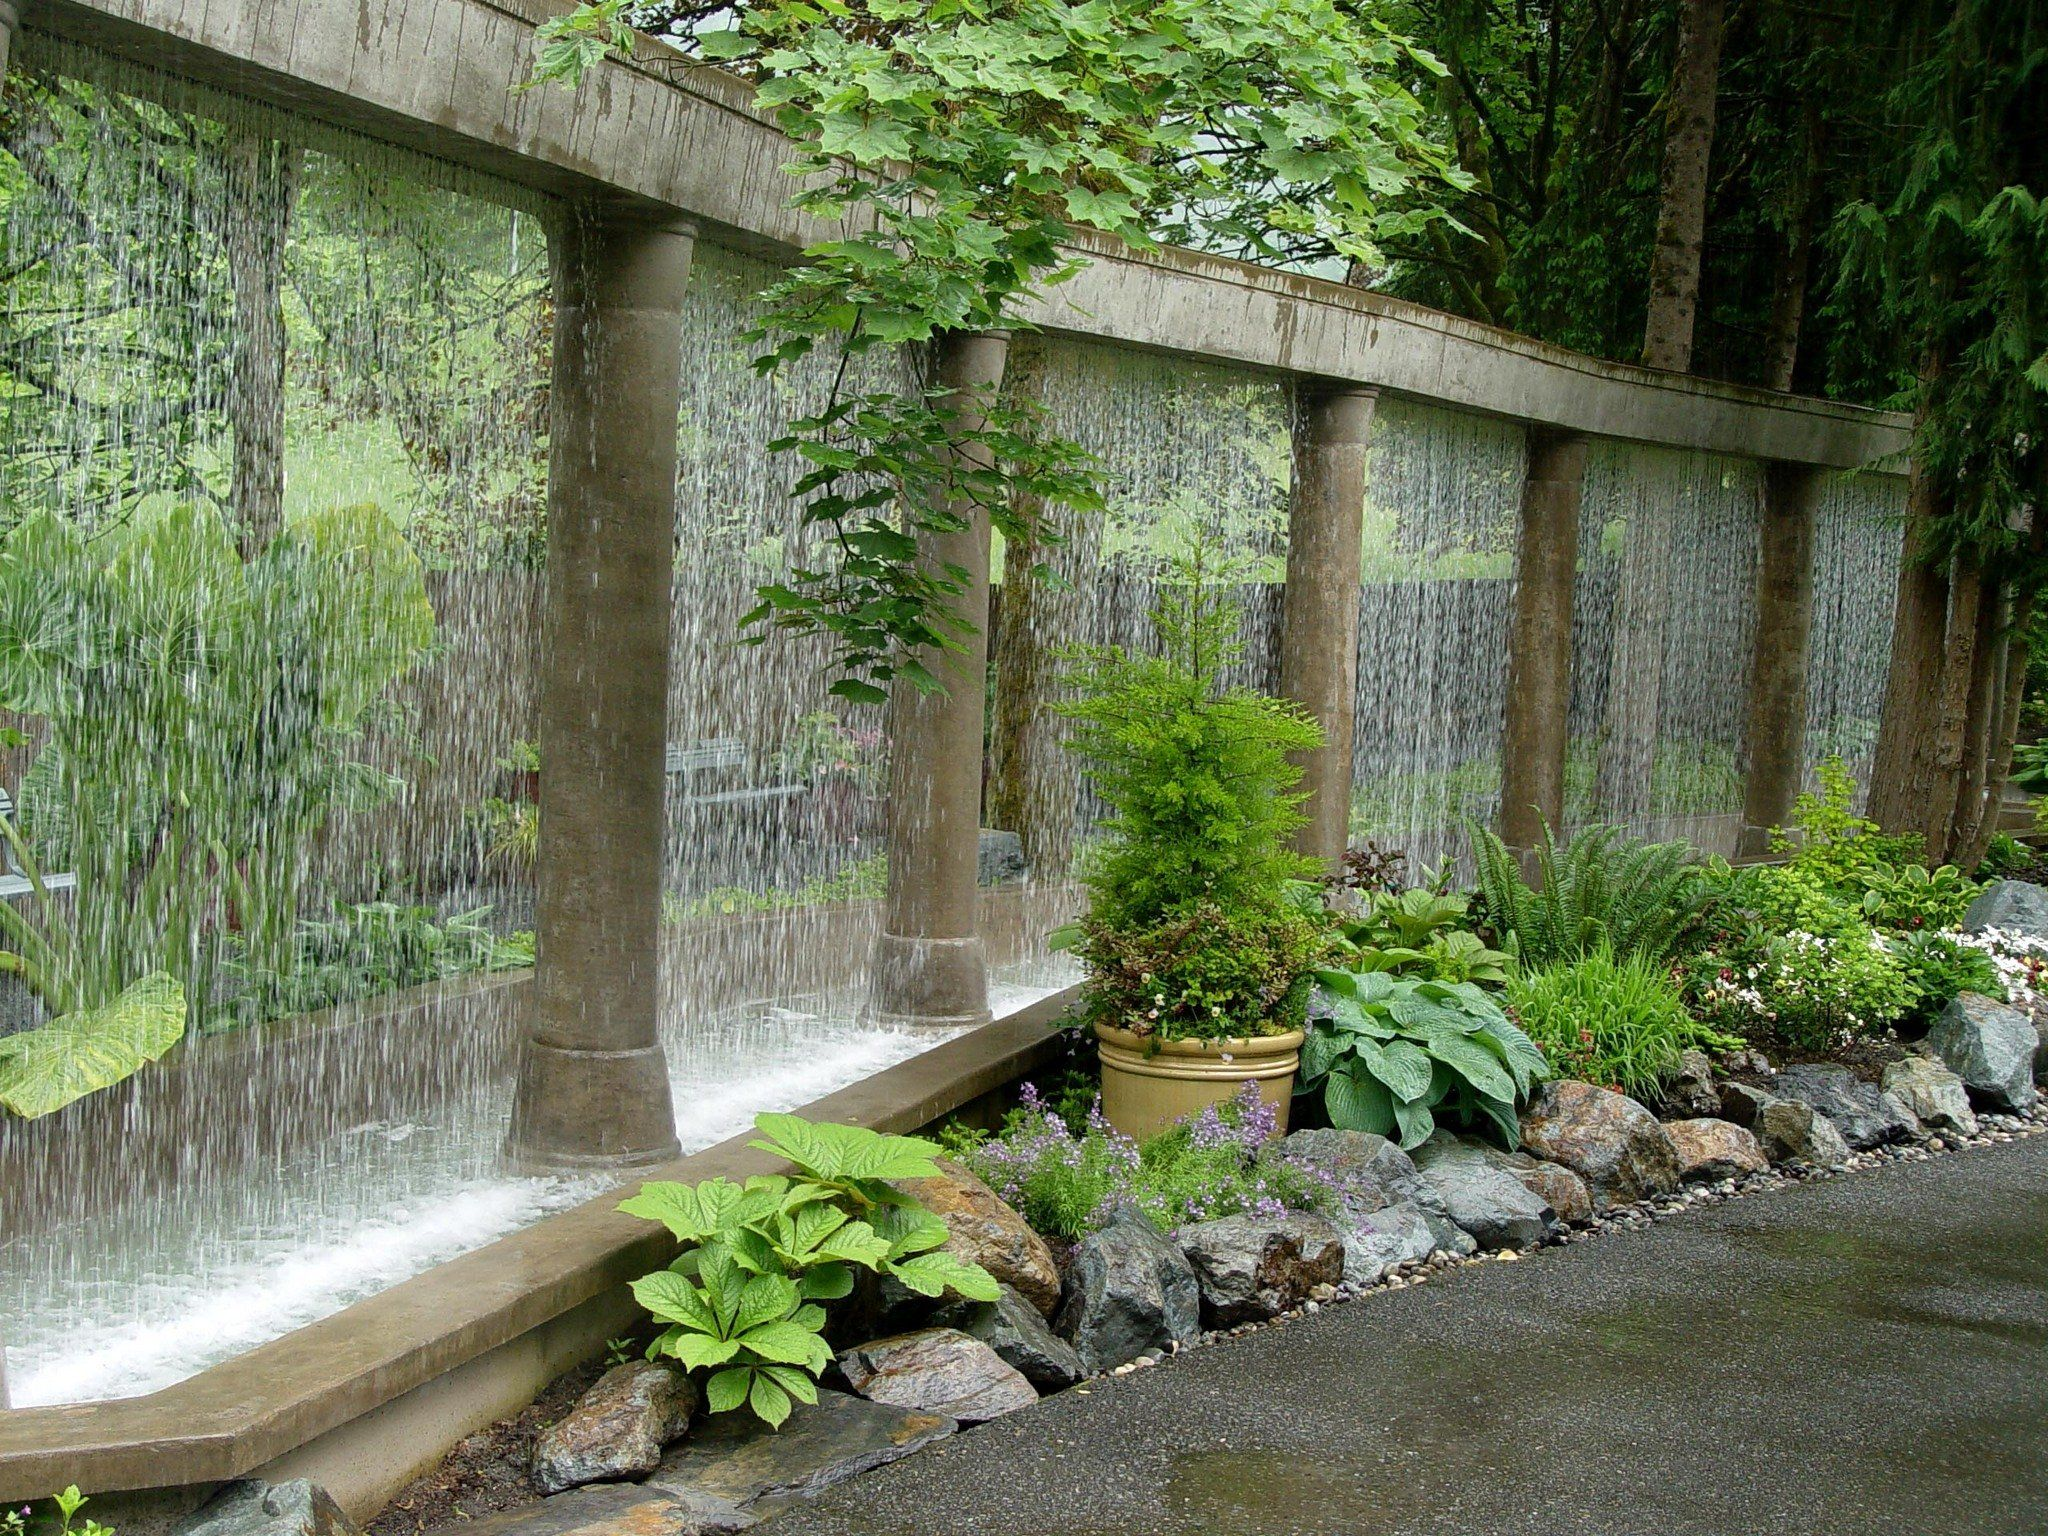 Waterfall garden plant they will come garden design for Water feature ideas for small gardens